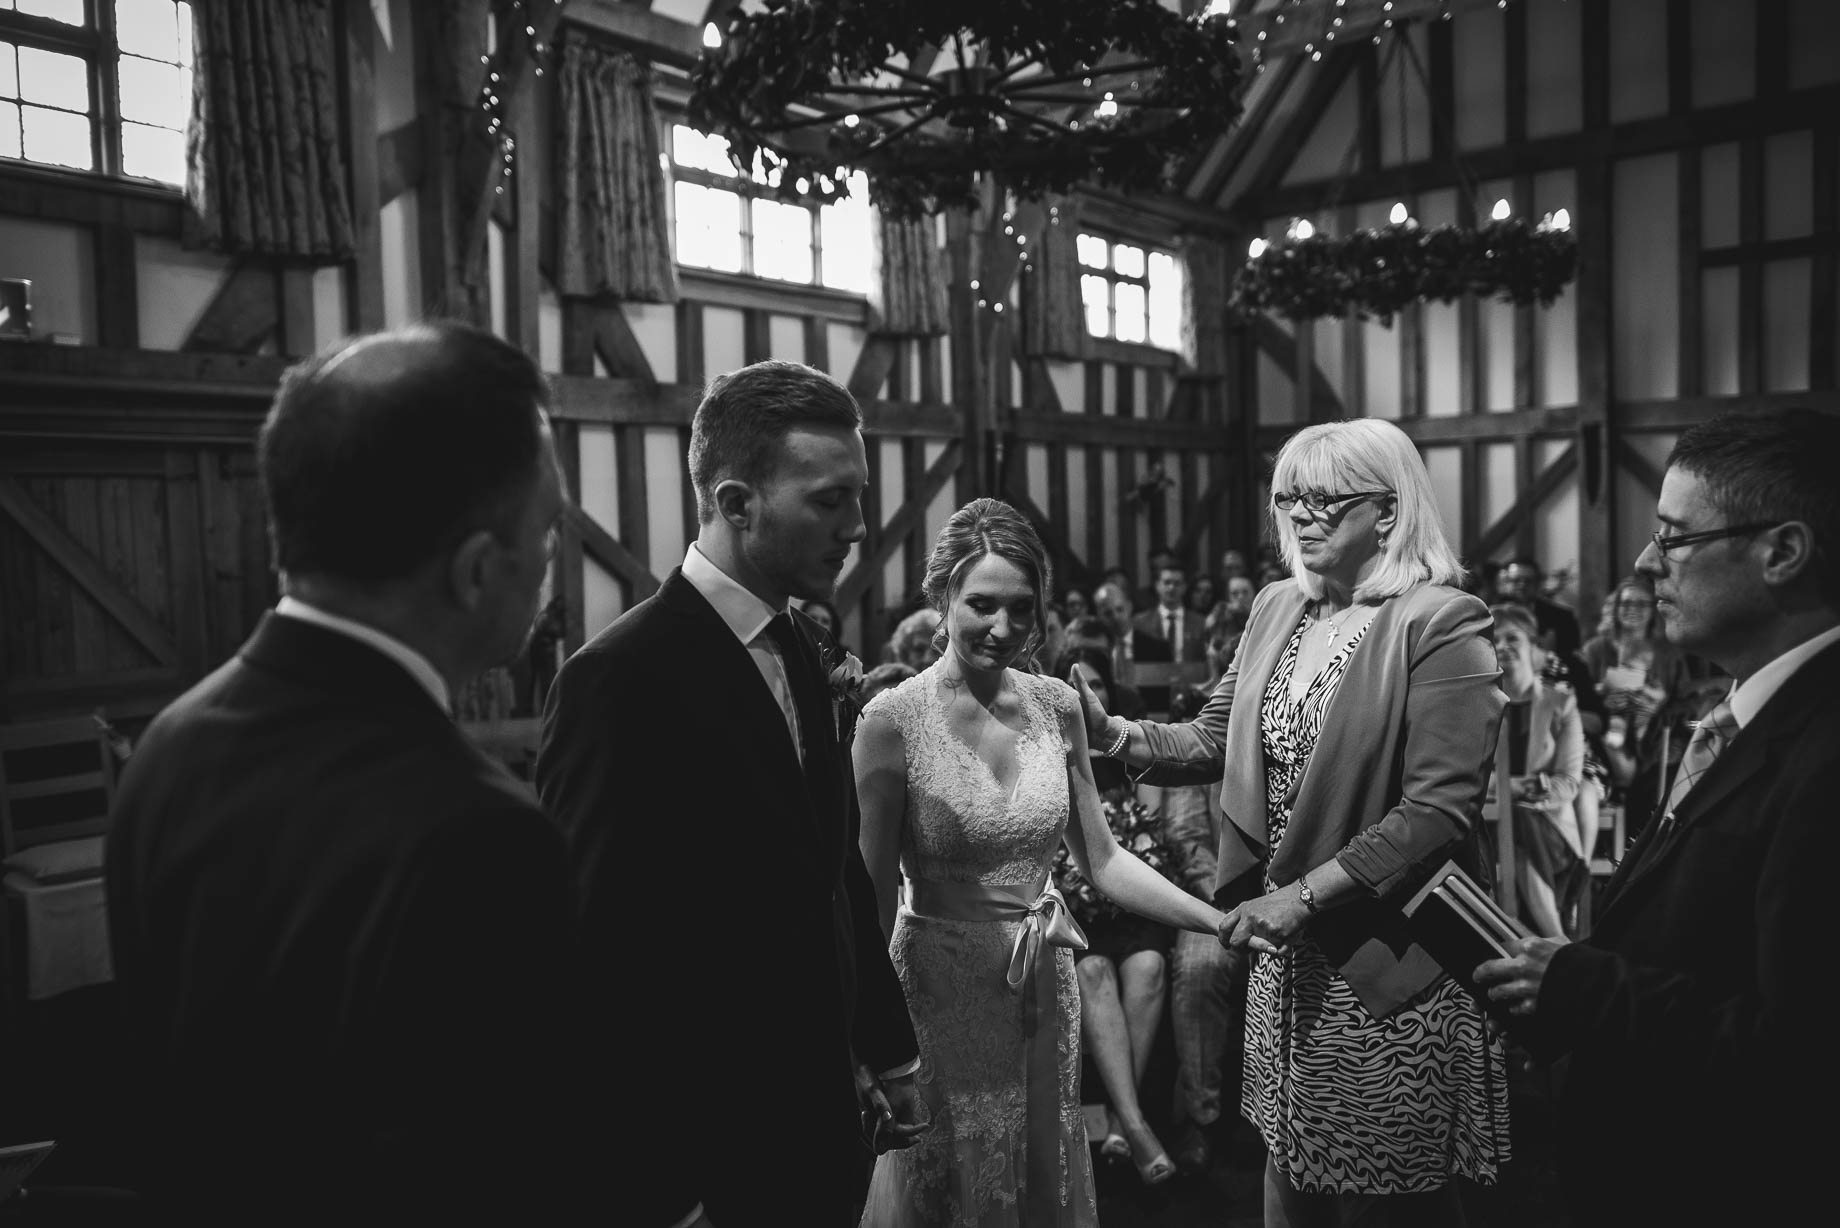 Surrey Wedding Photography by Guy Collier - Becca and James (47 of 145)